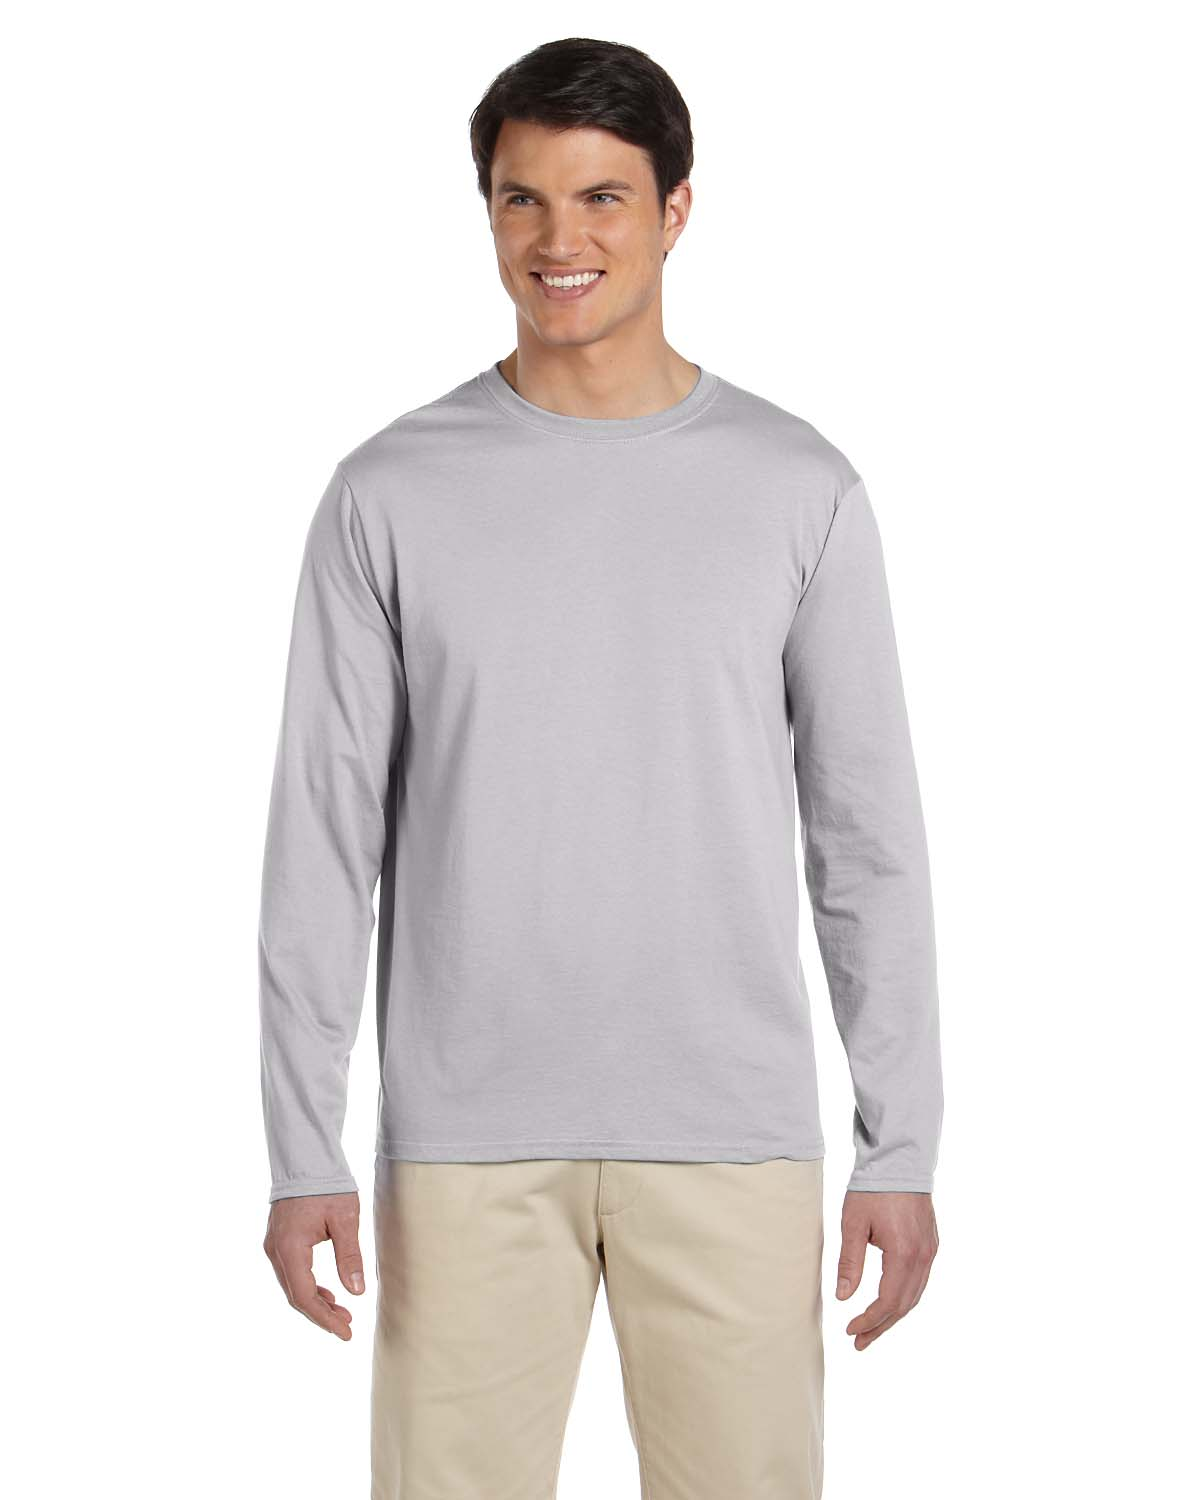 Gildan men 39 s 100 cotton taped neck crewneck long sleeve t for Mens 100 cotton long sleeve t shirts